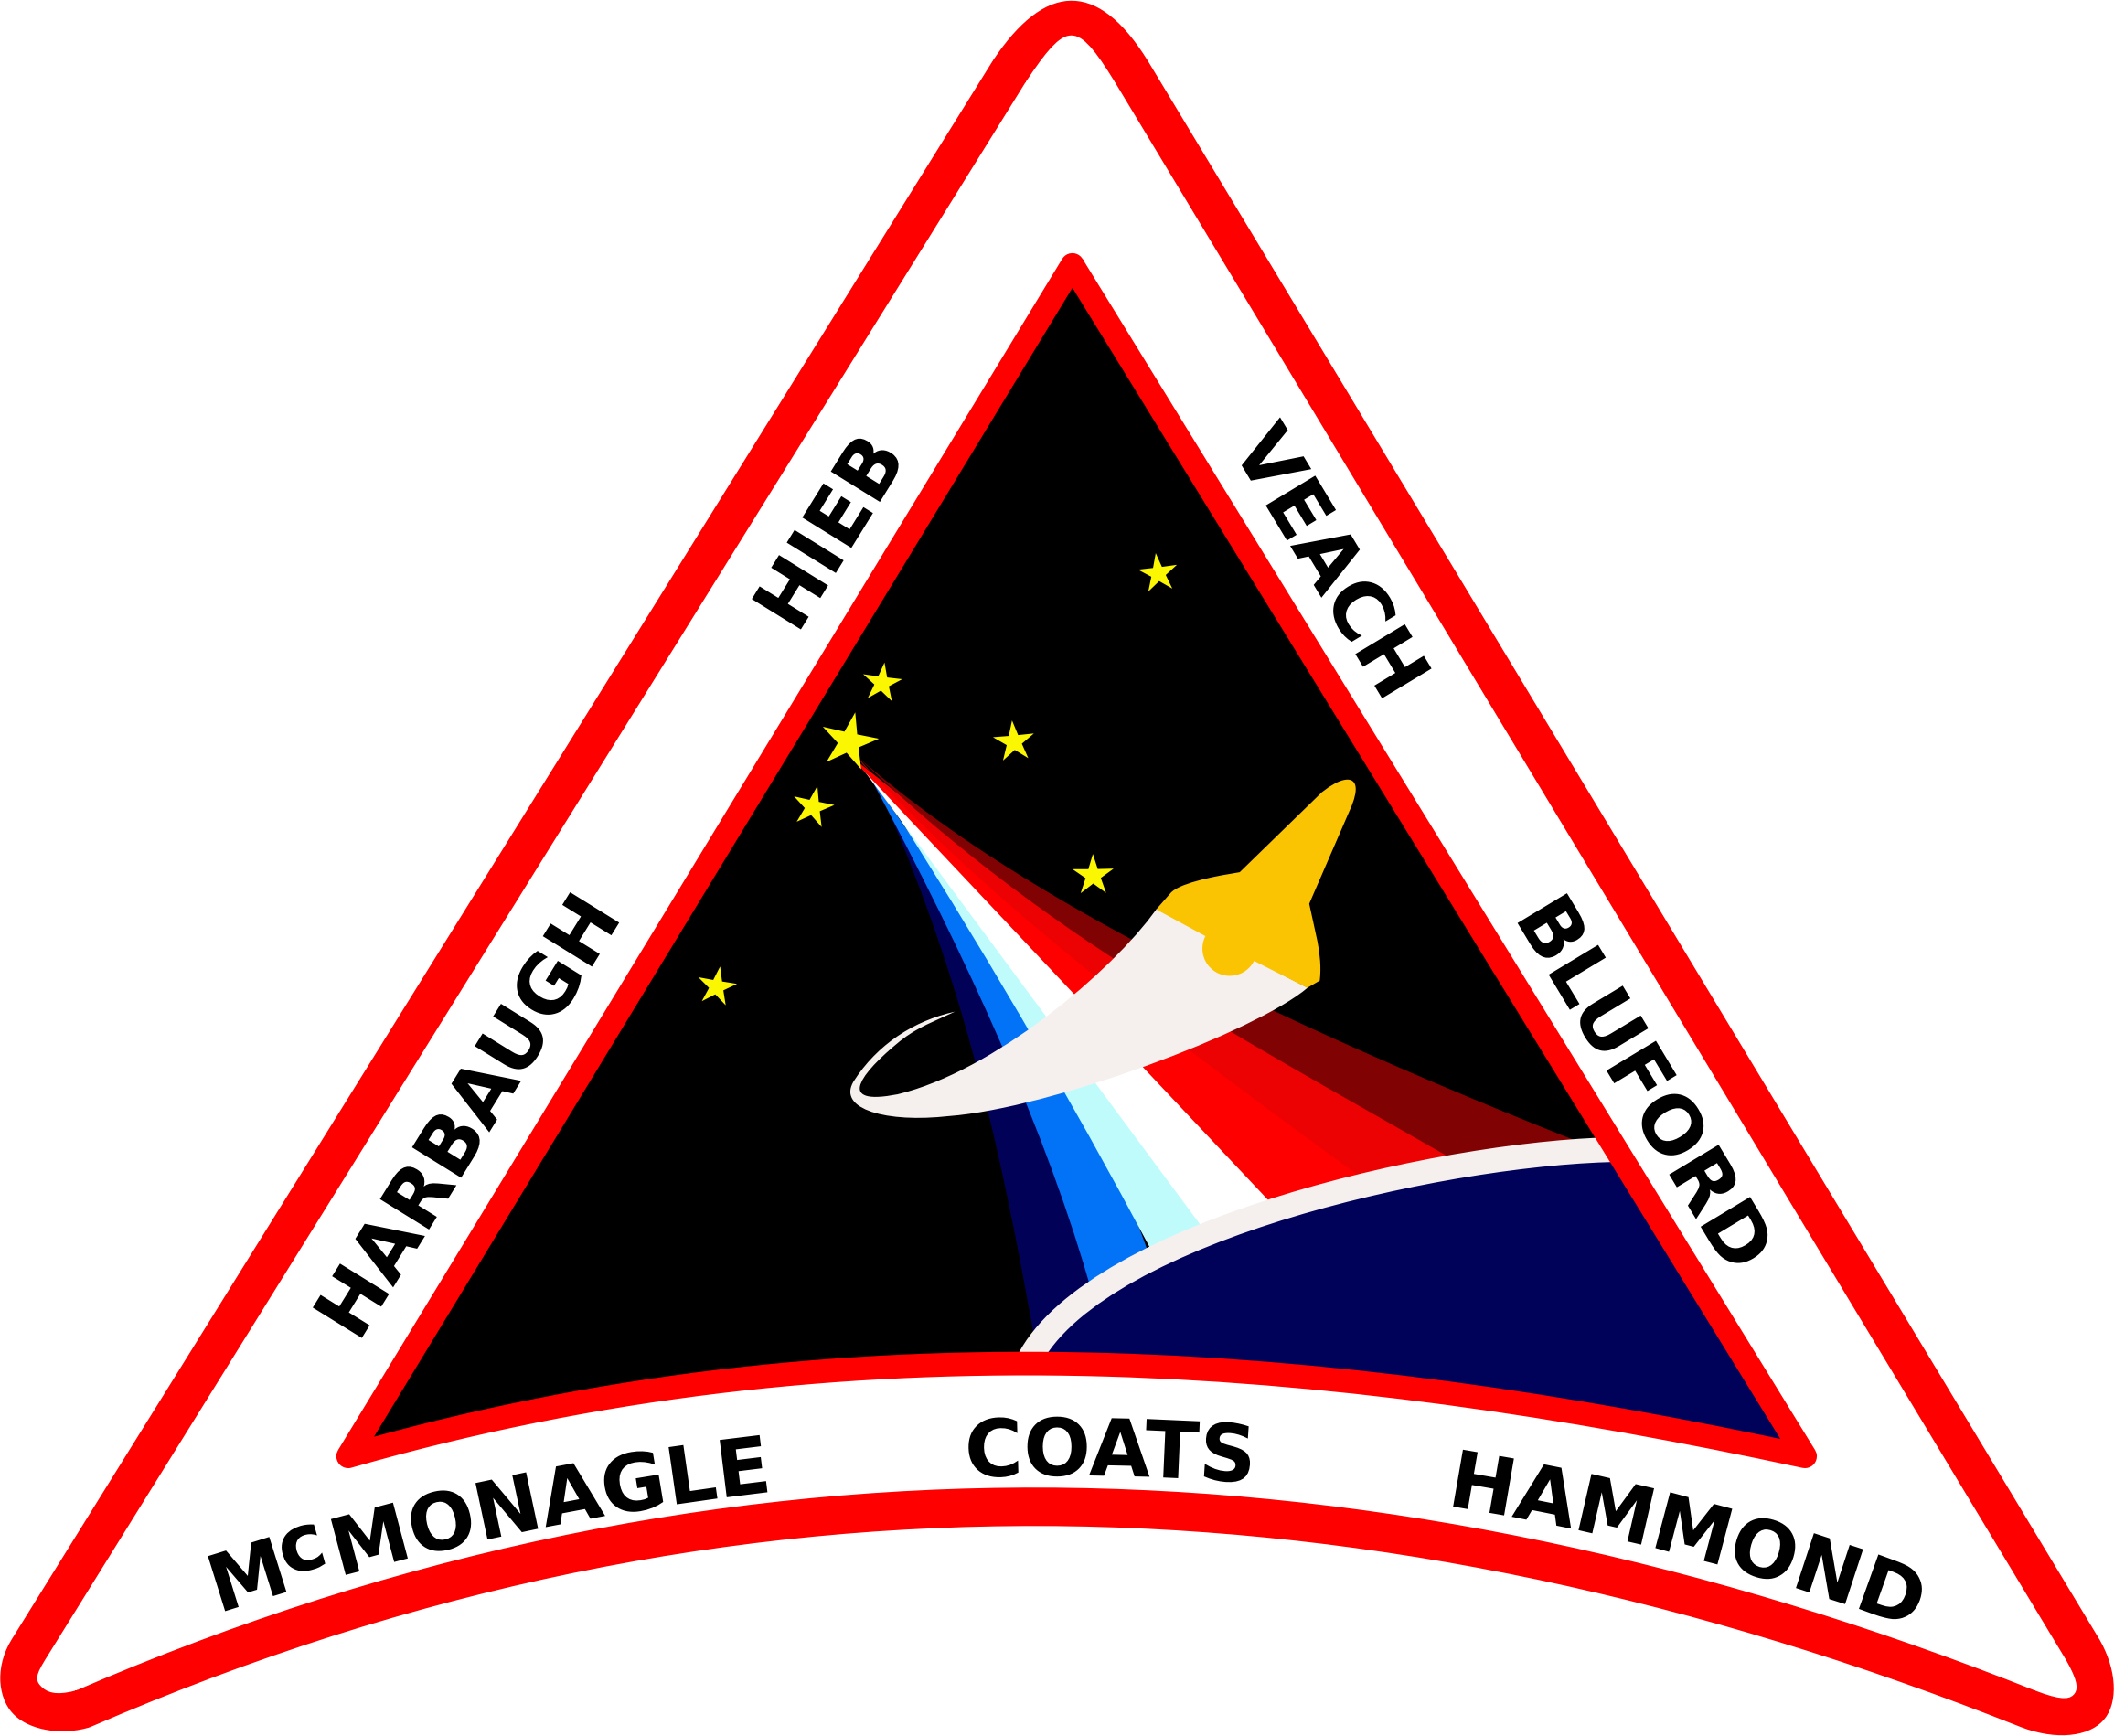 STS-39 Patch by NASA